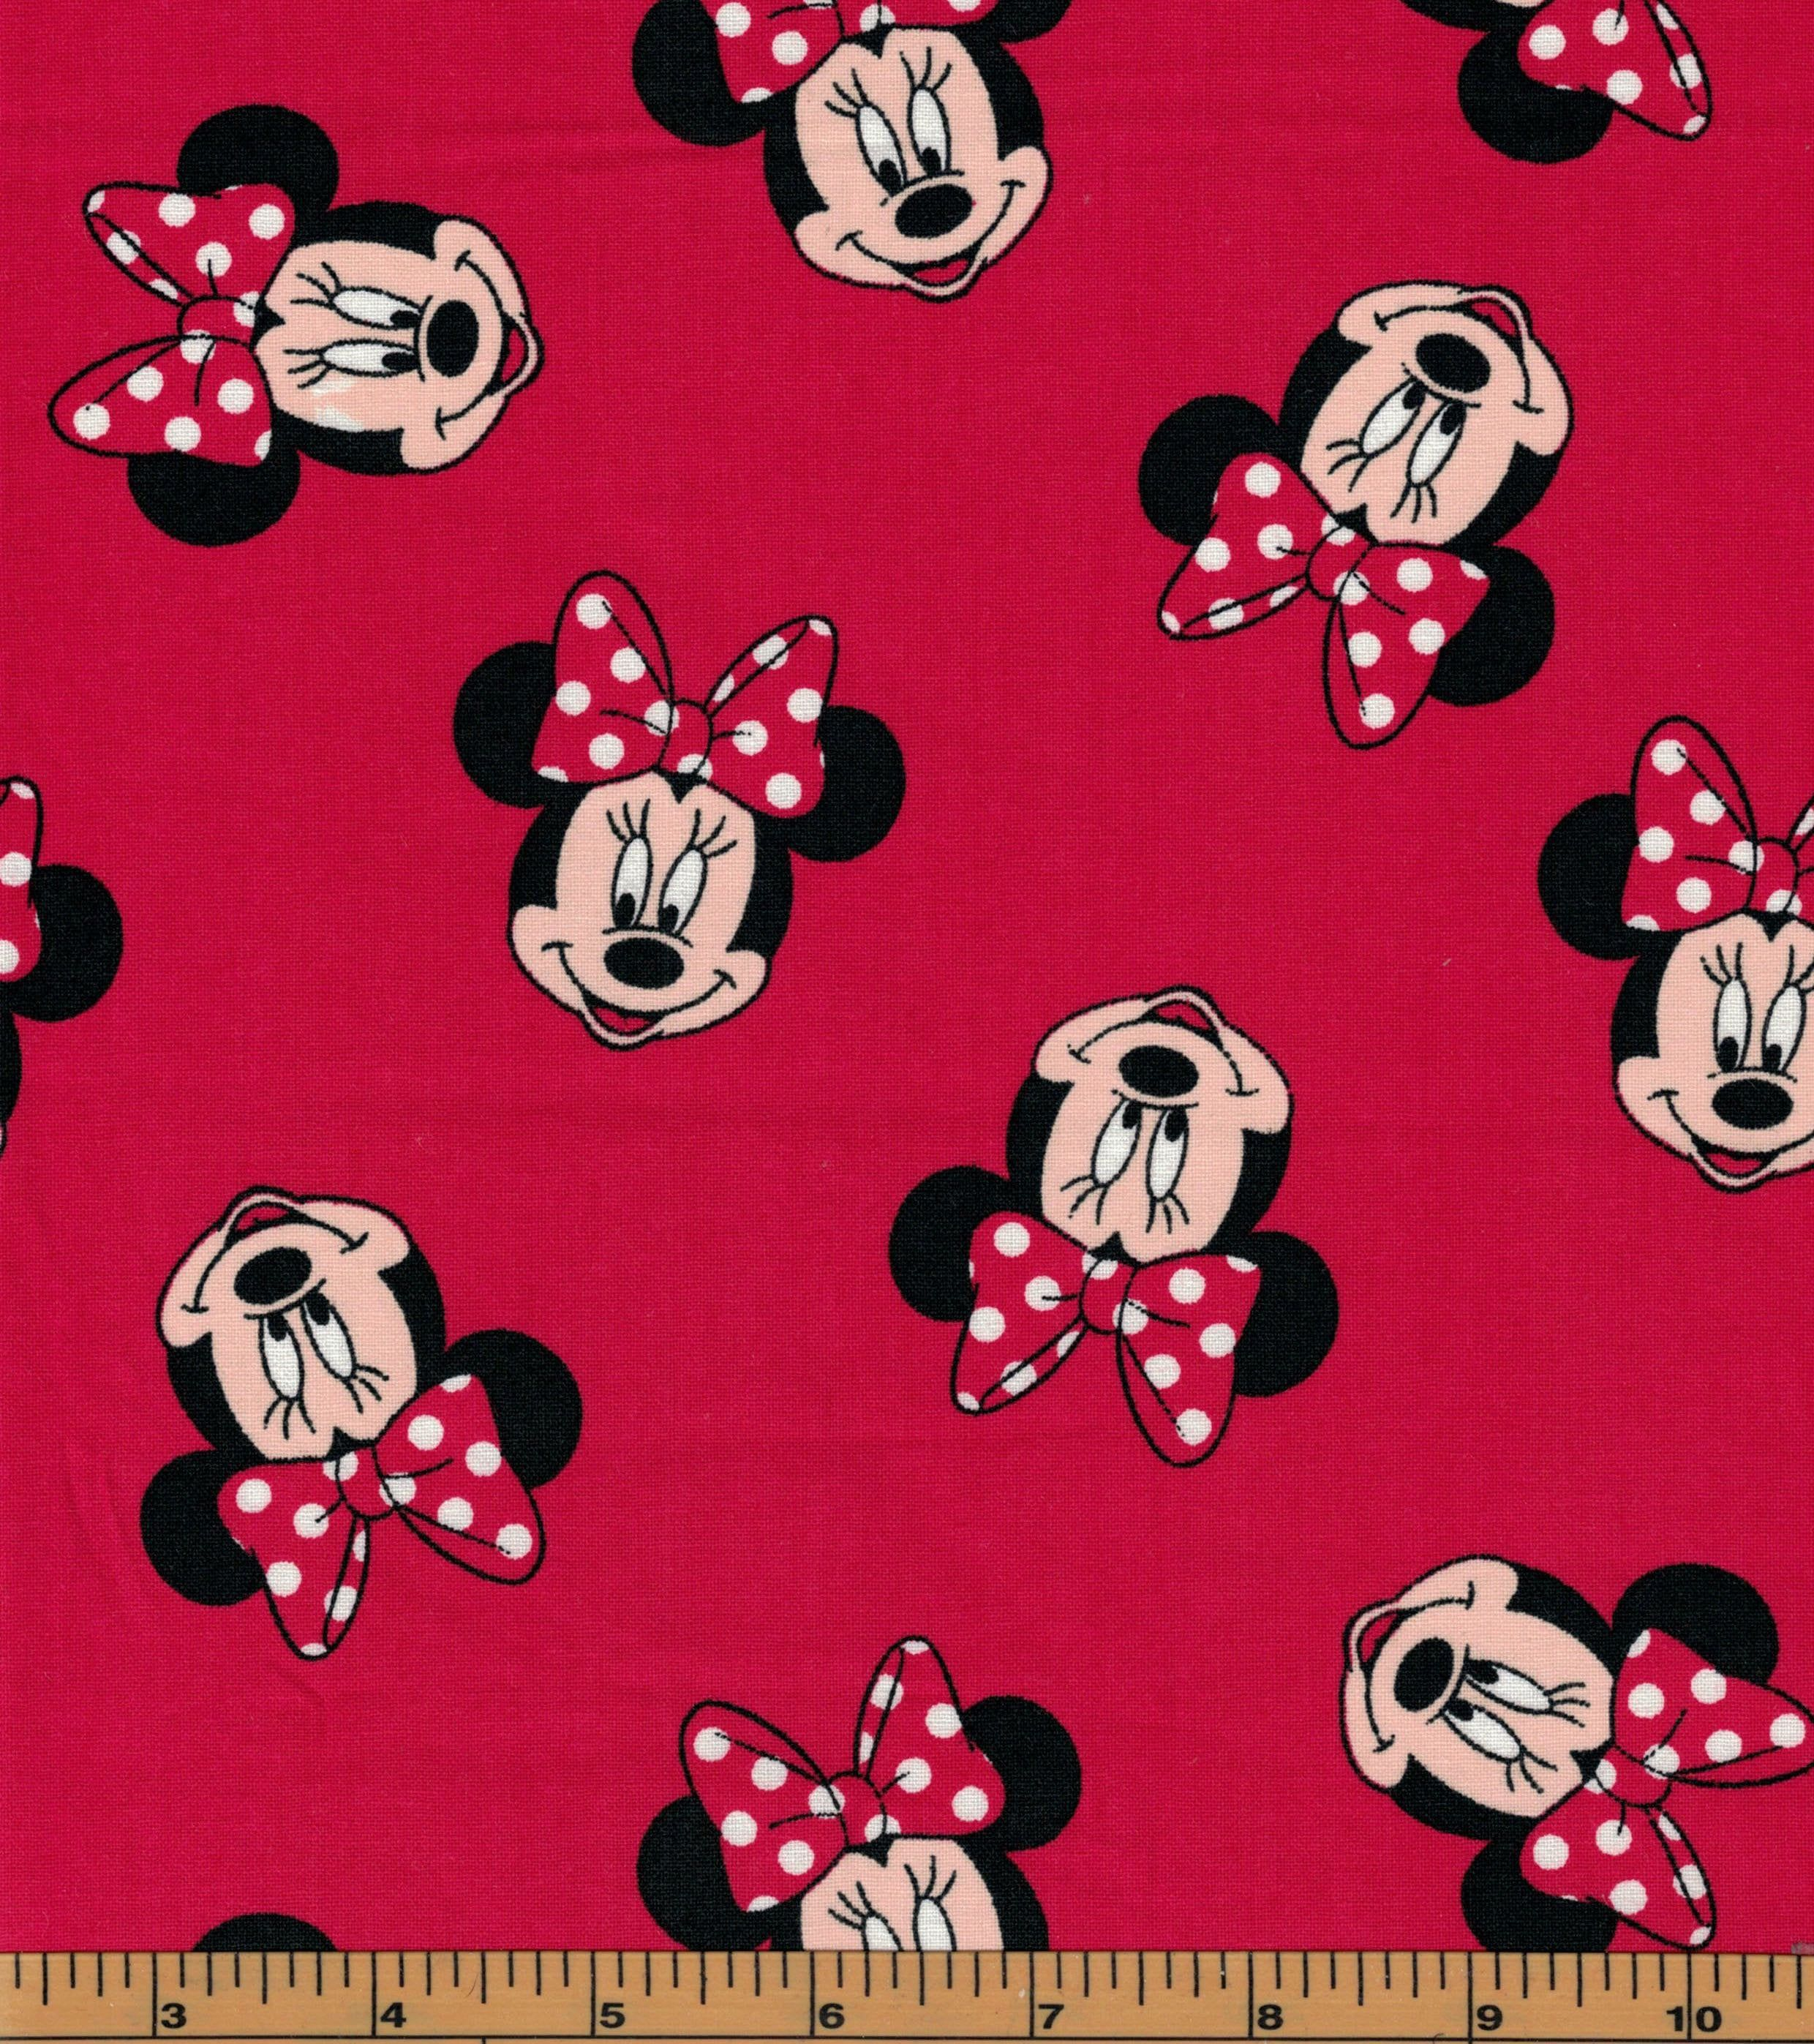 1//2 YARD MICKEY MOUSE /& FRIENDS EXPLORING 100/% COTTON  BRAND  NEW  VERY CUTE!!